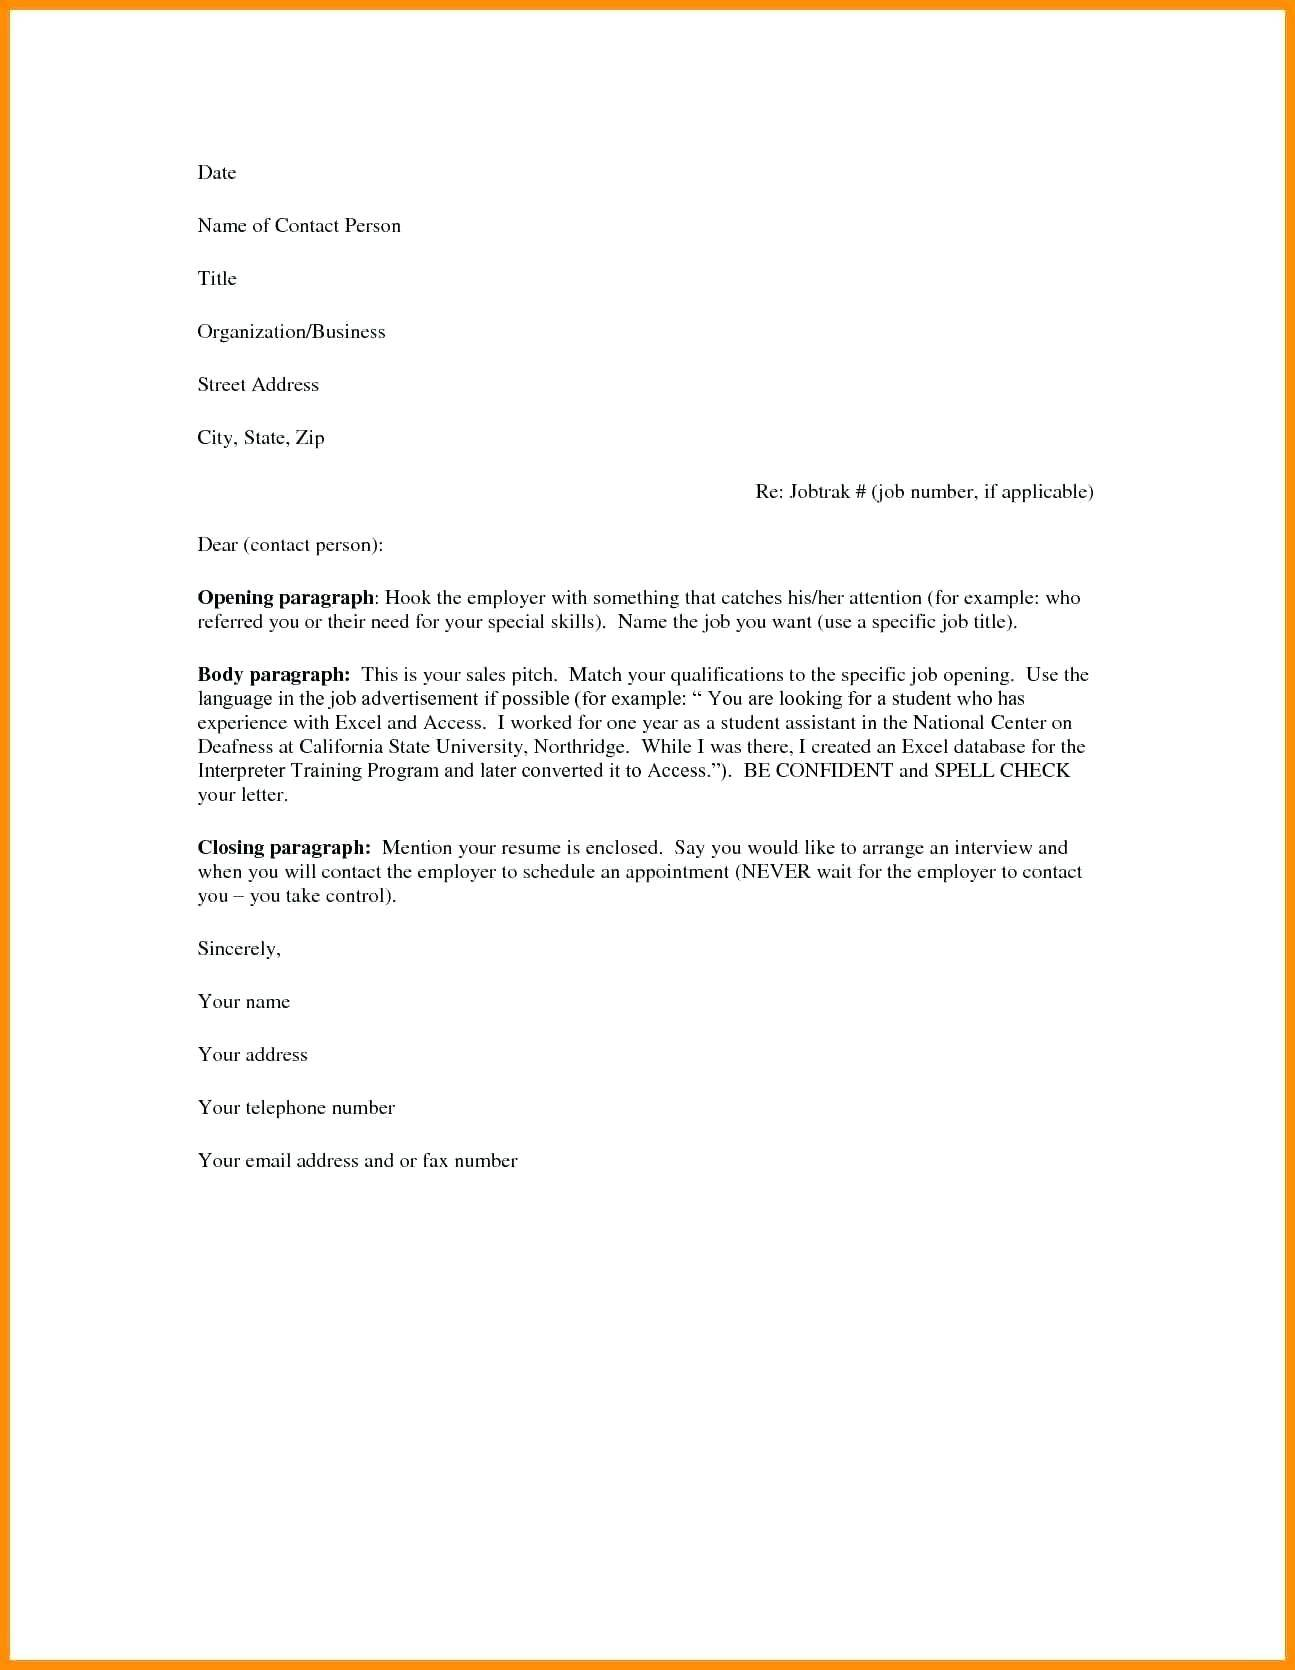 Recruitment Agency Contract Template Free